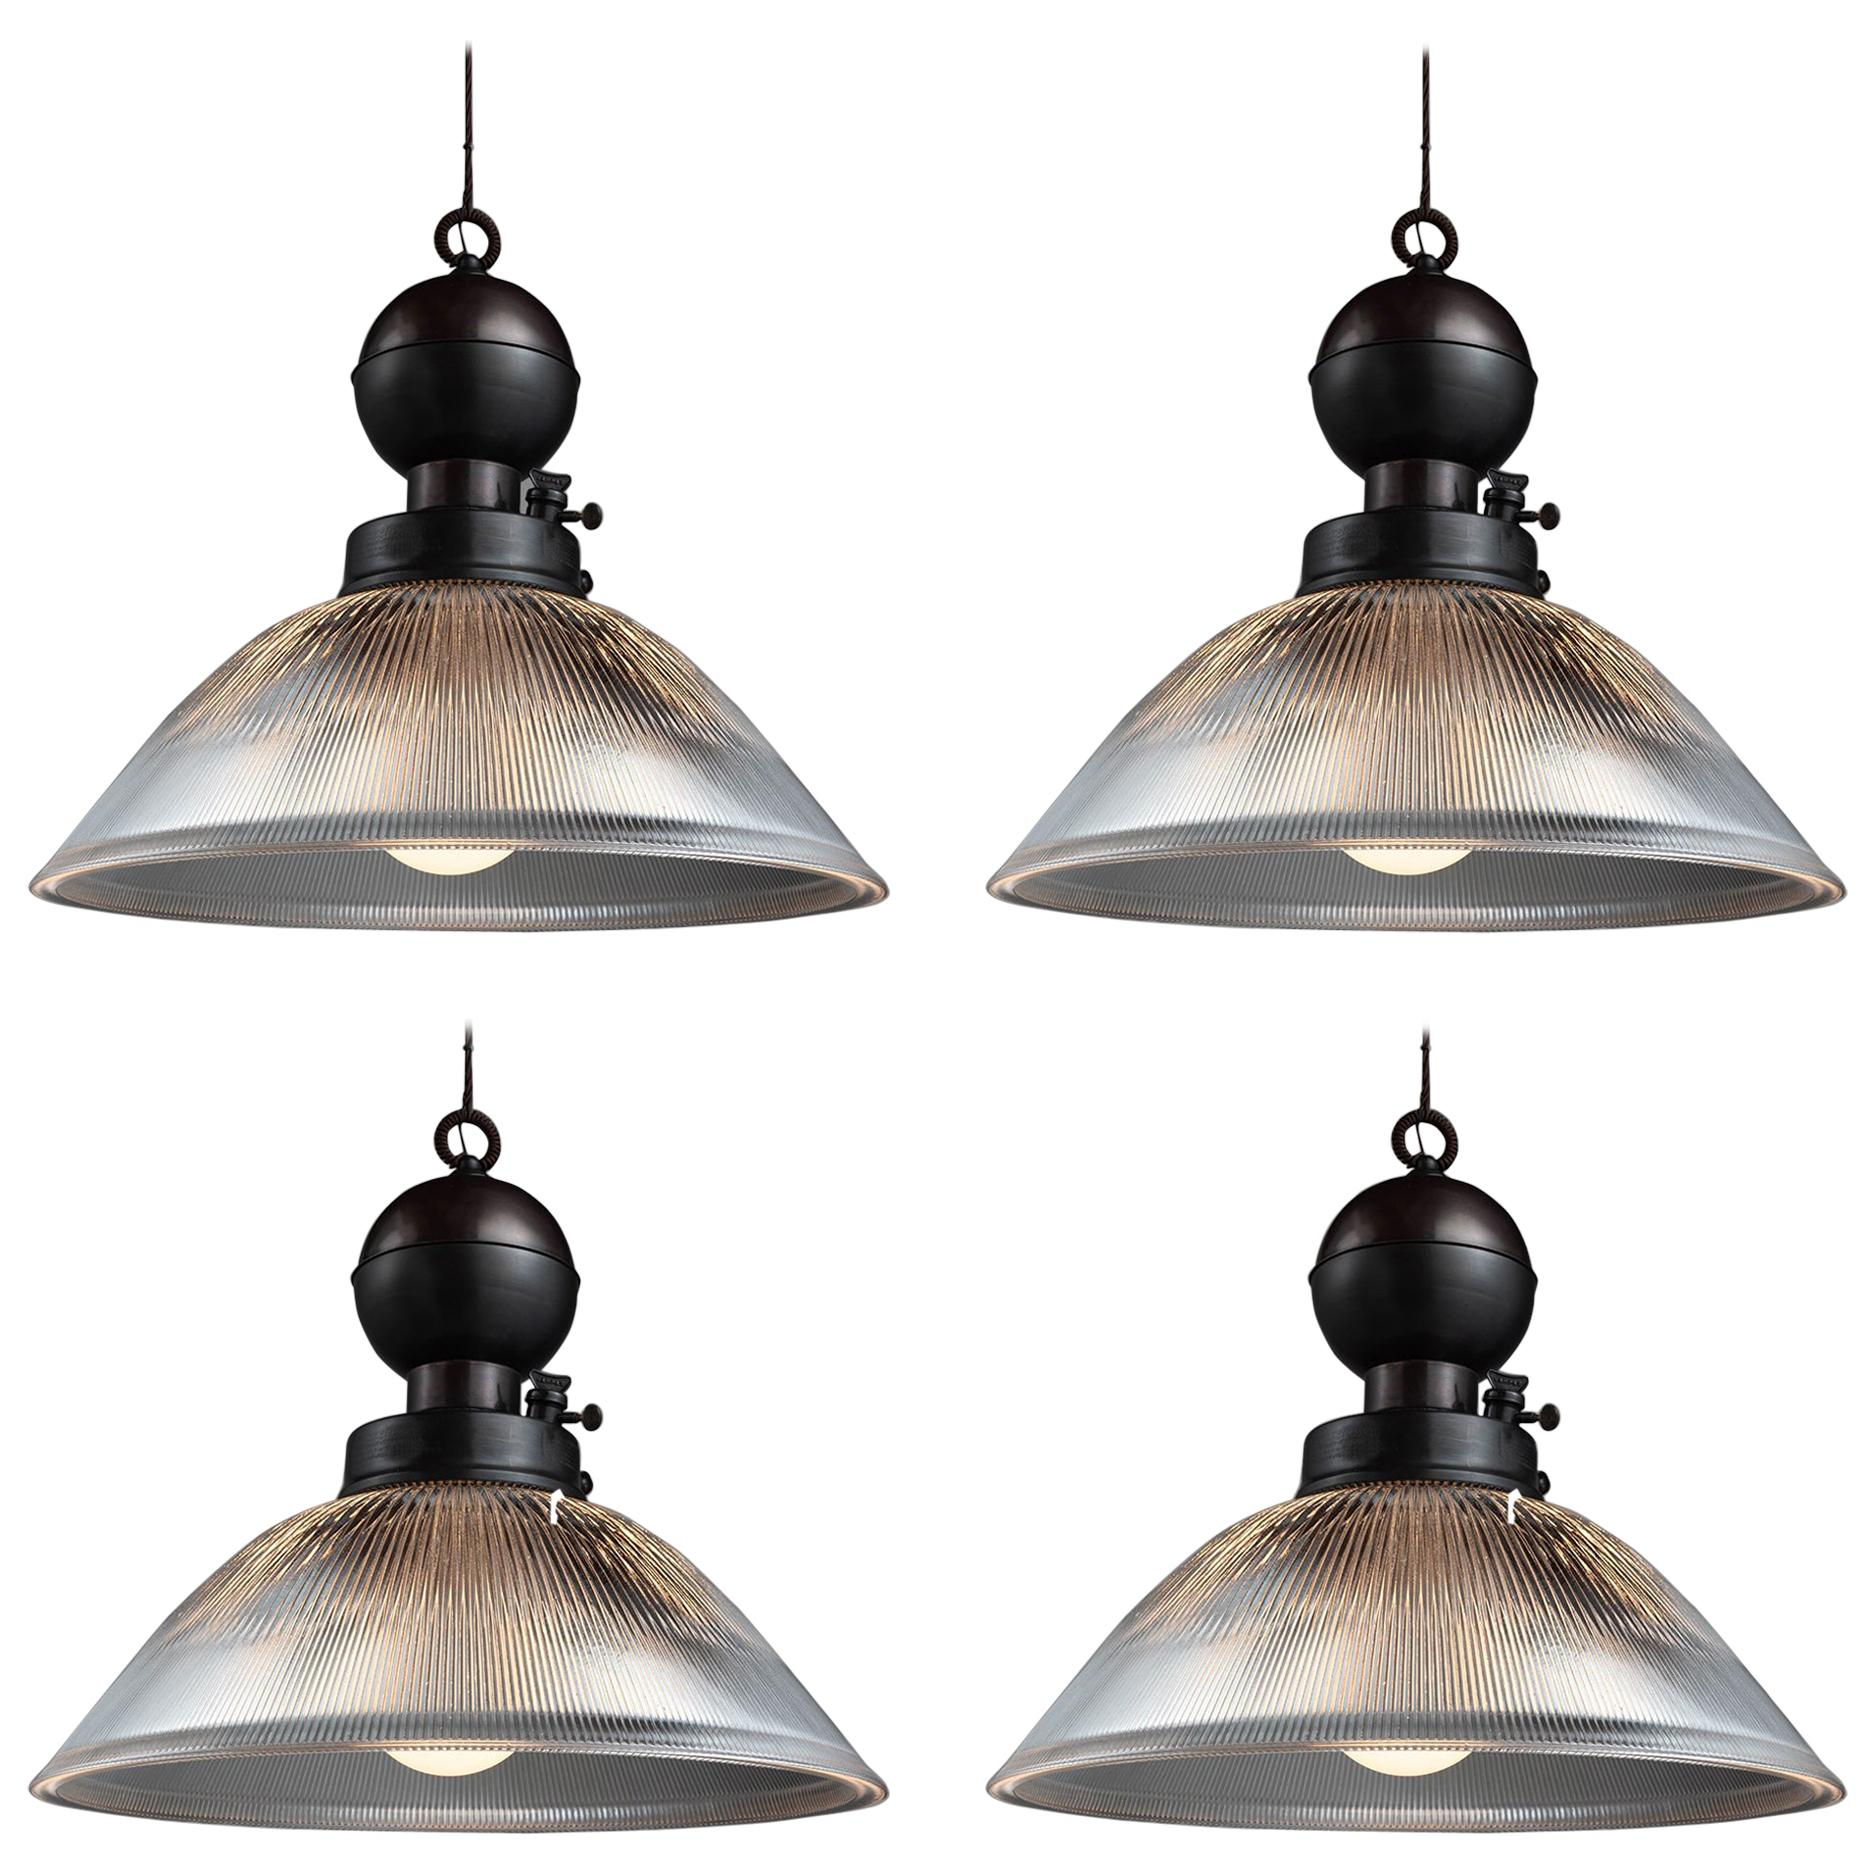 Industrial Glass and Brass Gas Lamp Pendant, Italy, 21st Century